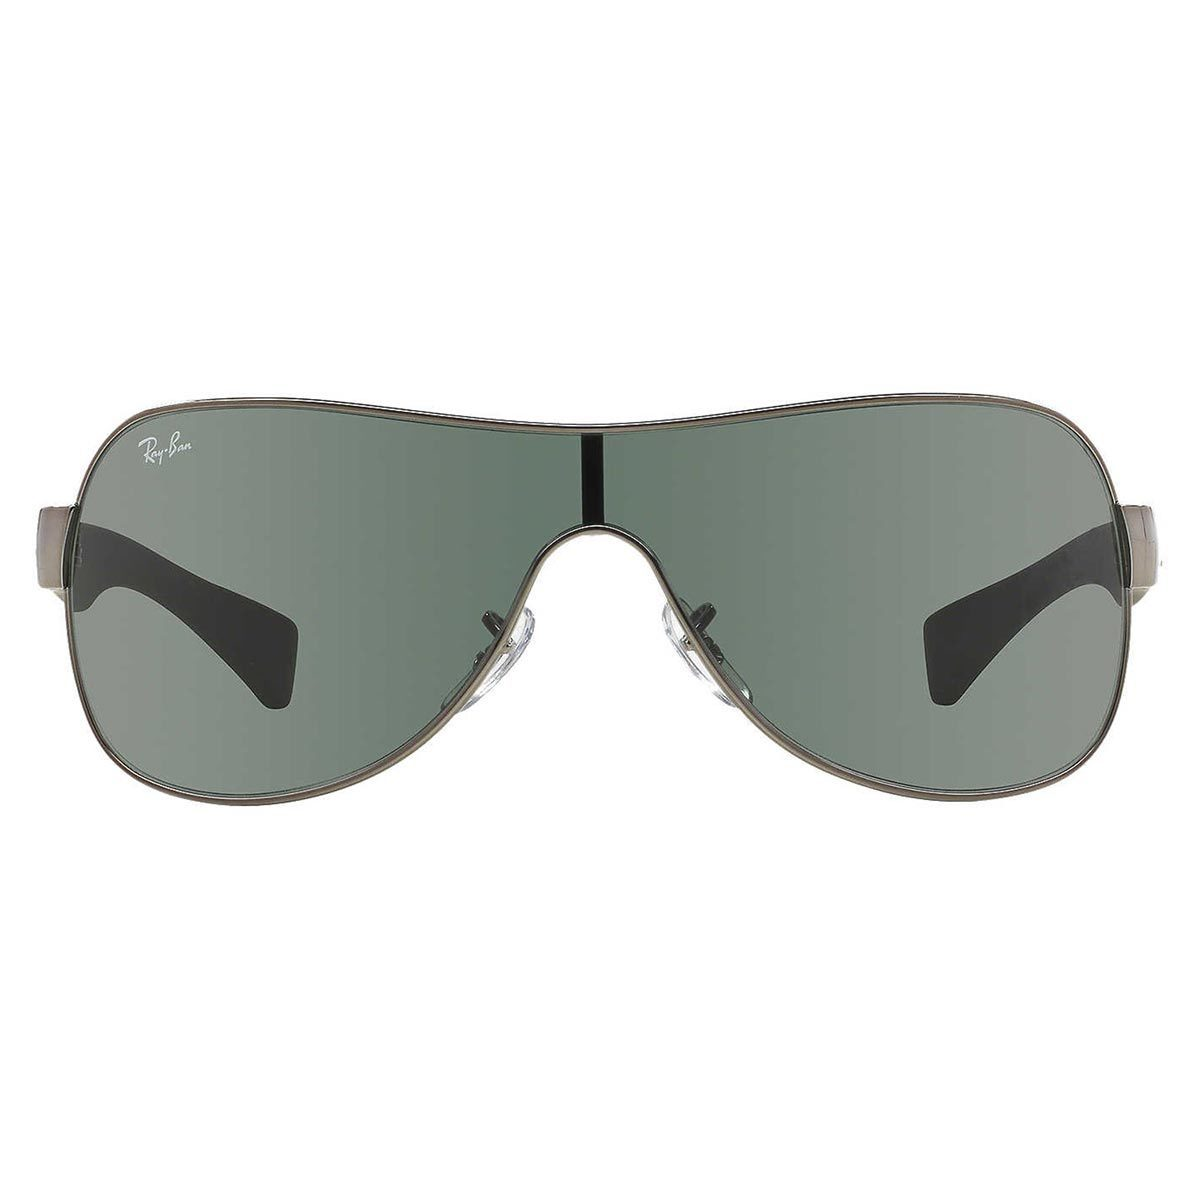 69381a76aff Shop Ray-Ban RB3471 Sunglasses Gunmetal   Black  Green Classic 32mm - Black  - Free Shipping Today - Overstock.com - 10482690